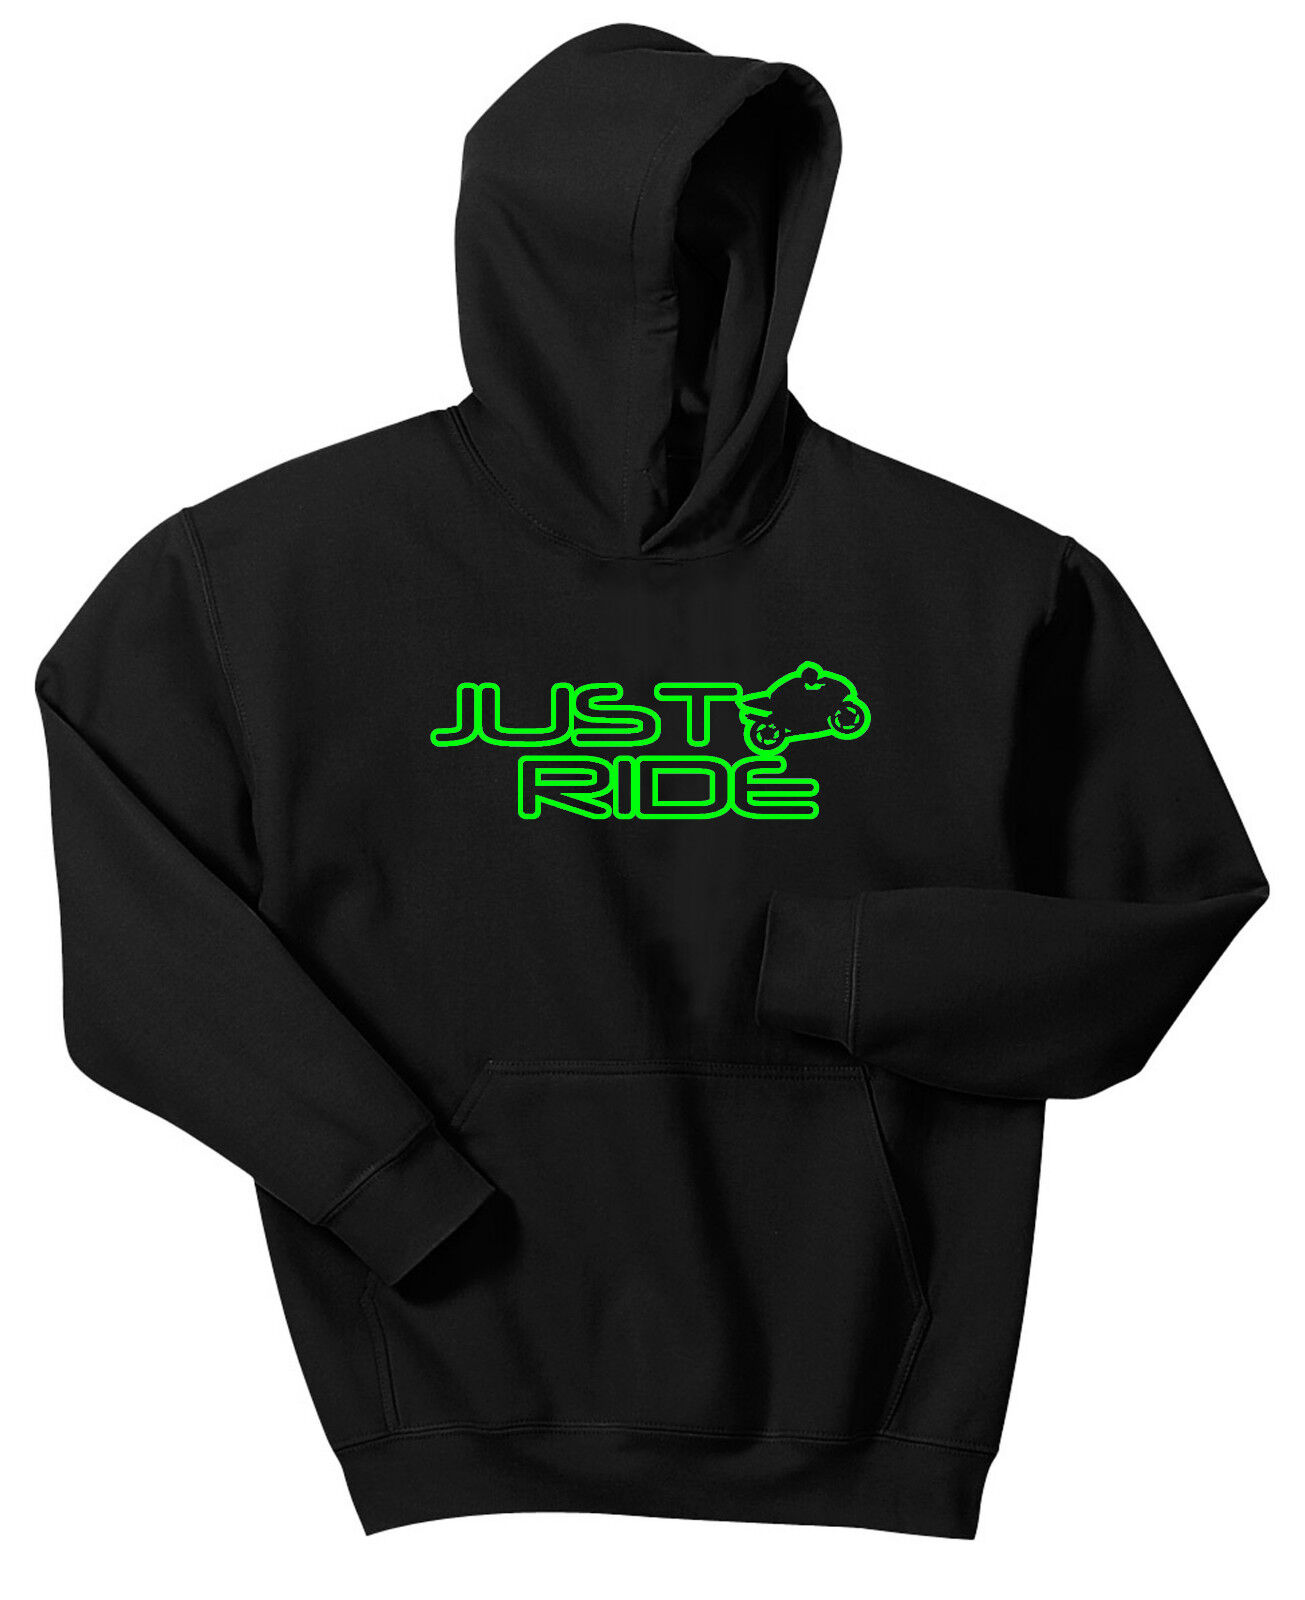 JUST RIDE HOODIE SWEAT SHIRT STREET BIKE ROAD MOTORCYCLE R1 CBR GSXR SUPERBIKE